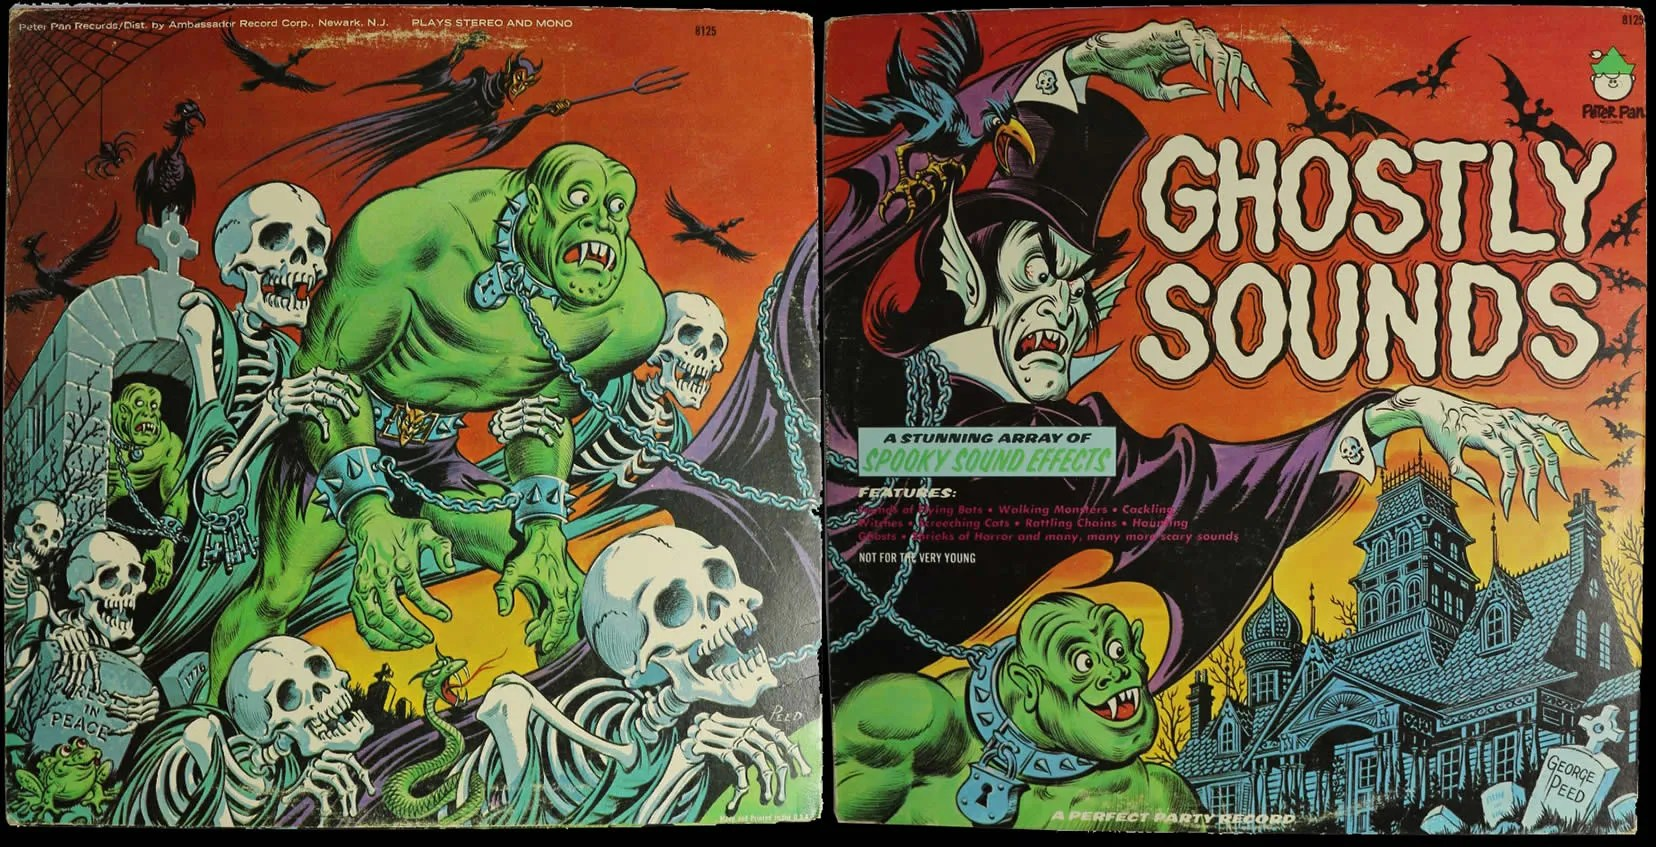 Ghostly Sounds Stereo LP (1975) 1